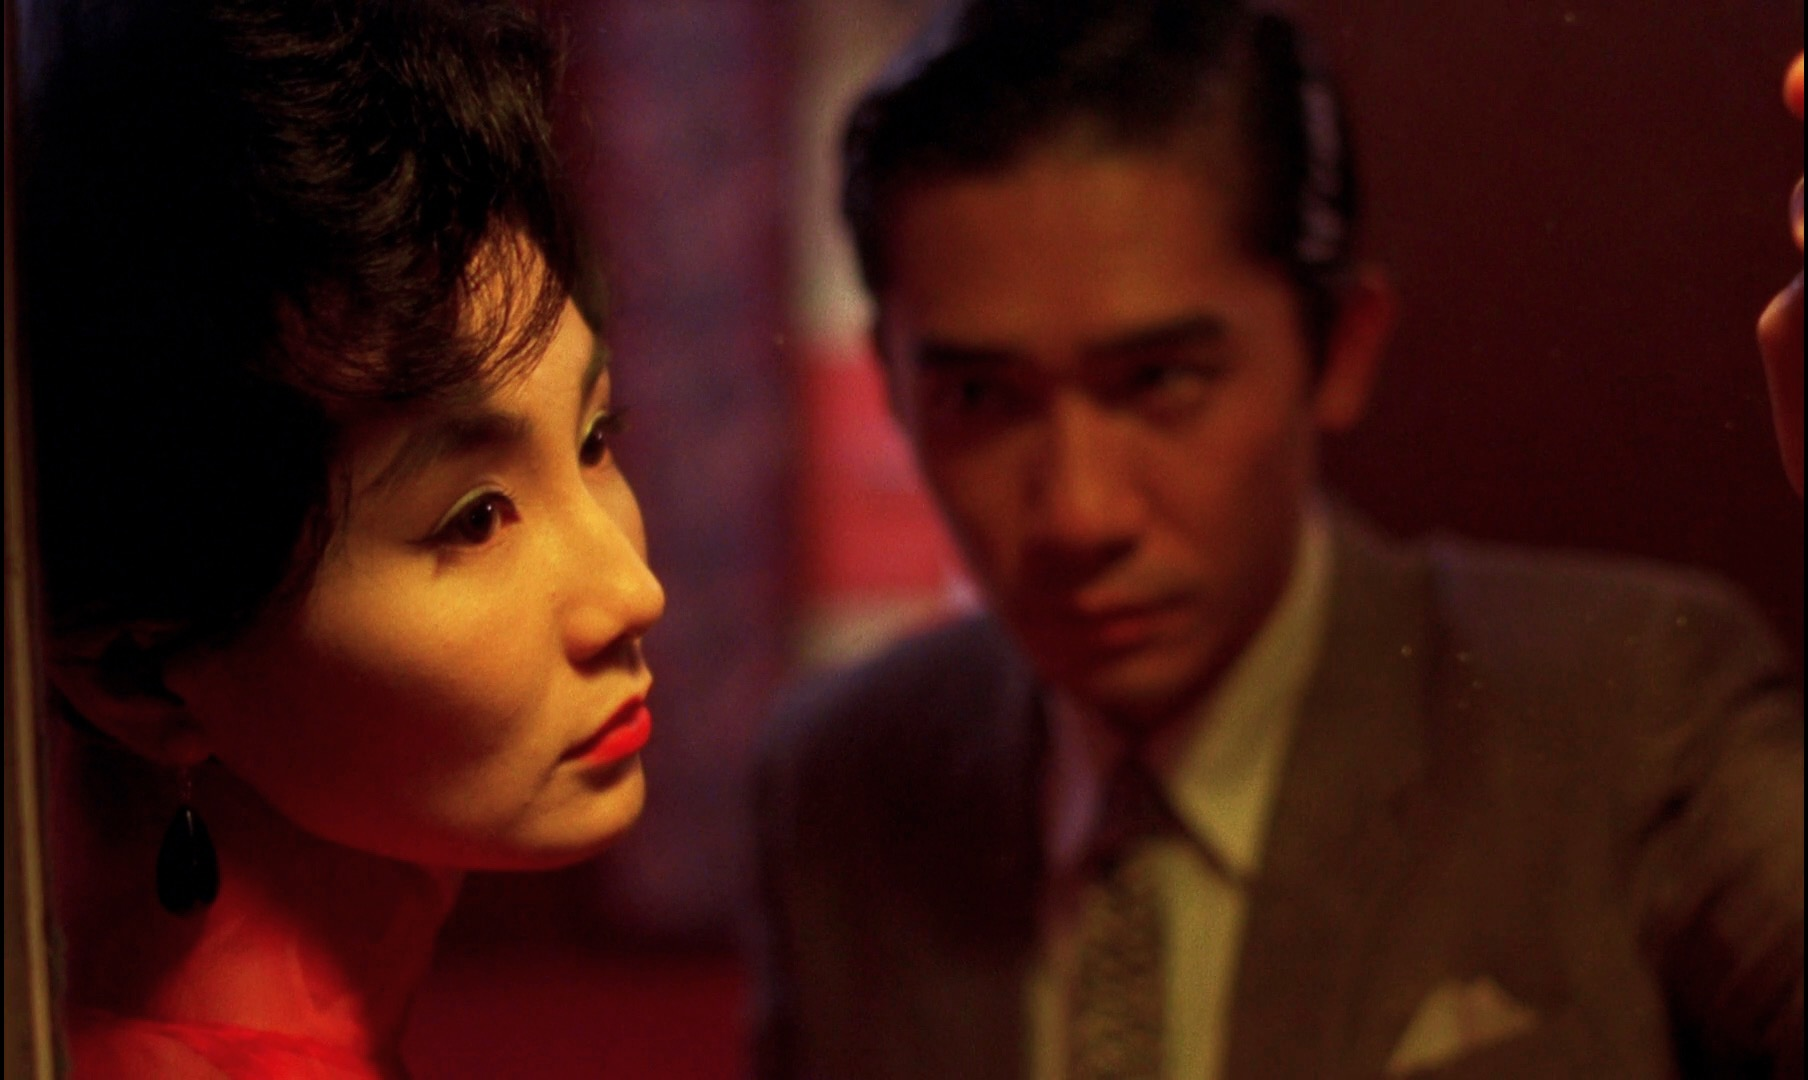 Wong Kar-wai: chi è il regista del capolavoro In the mood for love